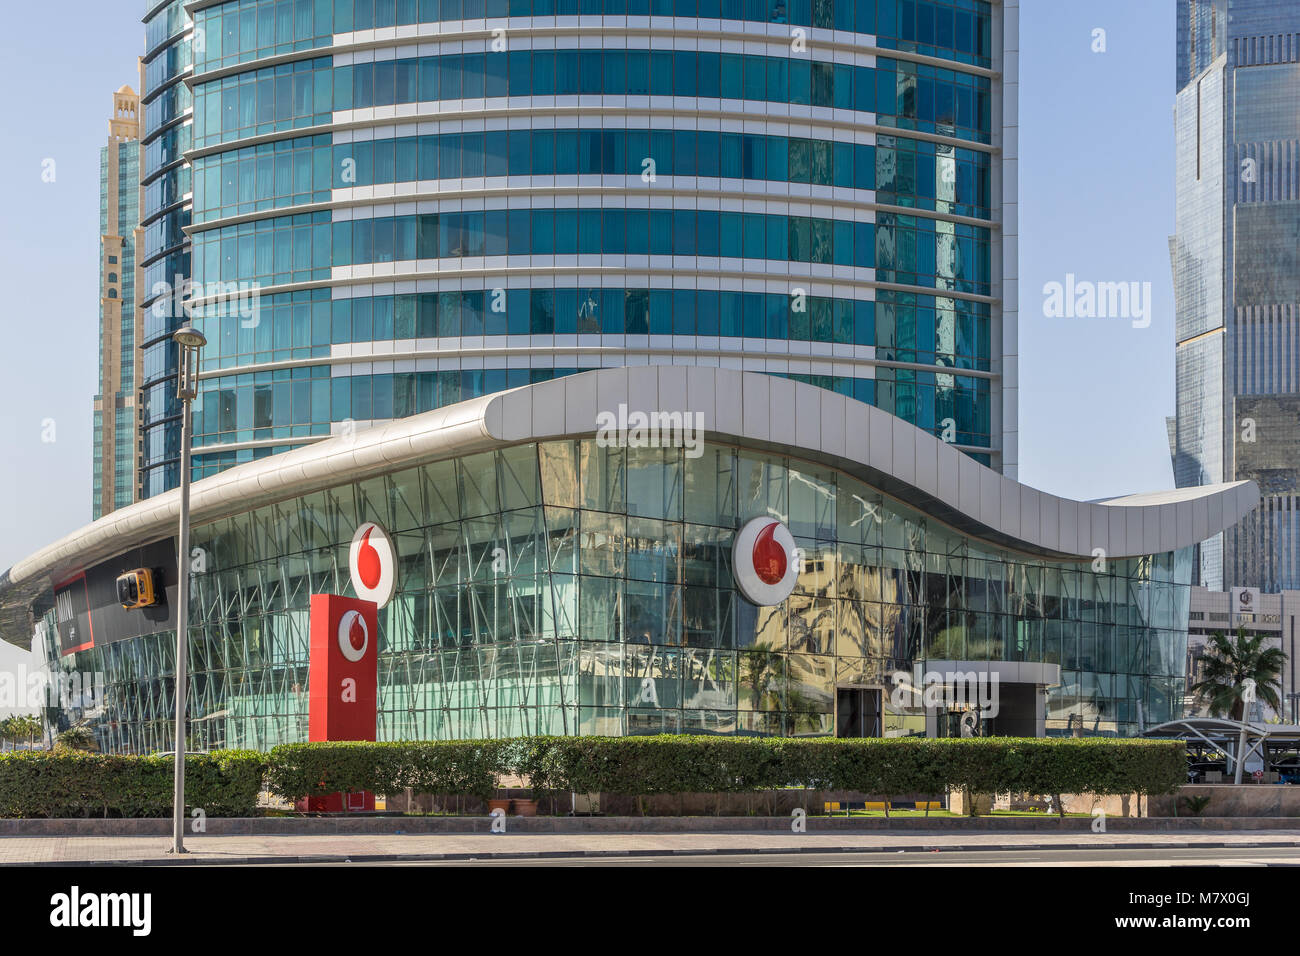 Vodafone Headquarters Stock Photos Vodafone Headquarters Stock - Vodafone-head-office-portugal